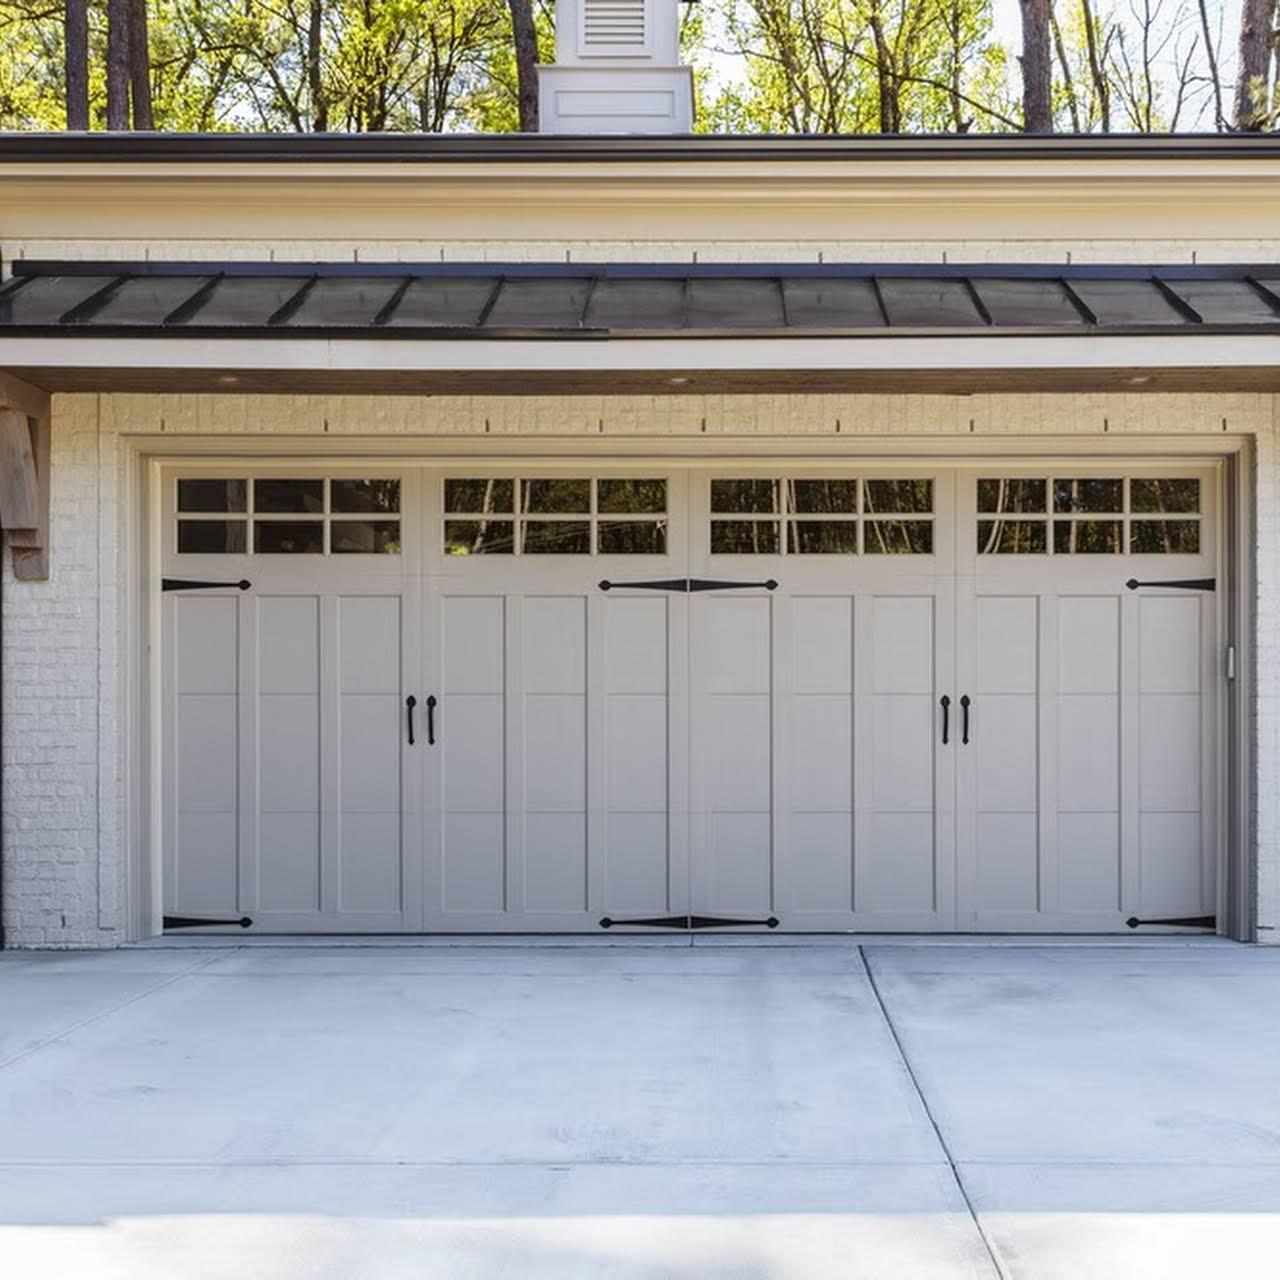 real lane garage john repair virginia doors estate beach va alexandria mls door brown